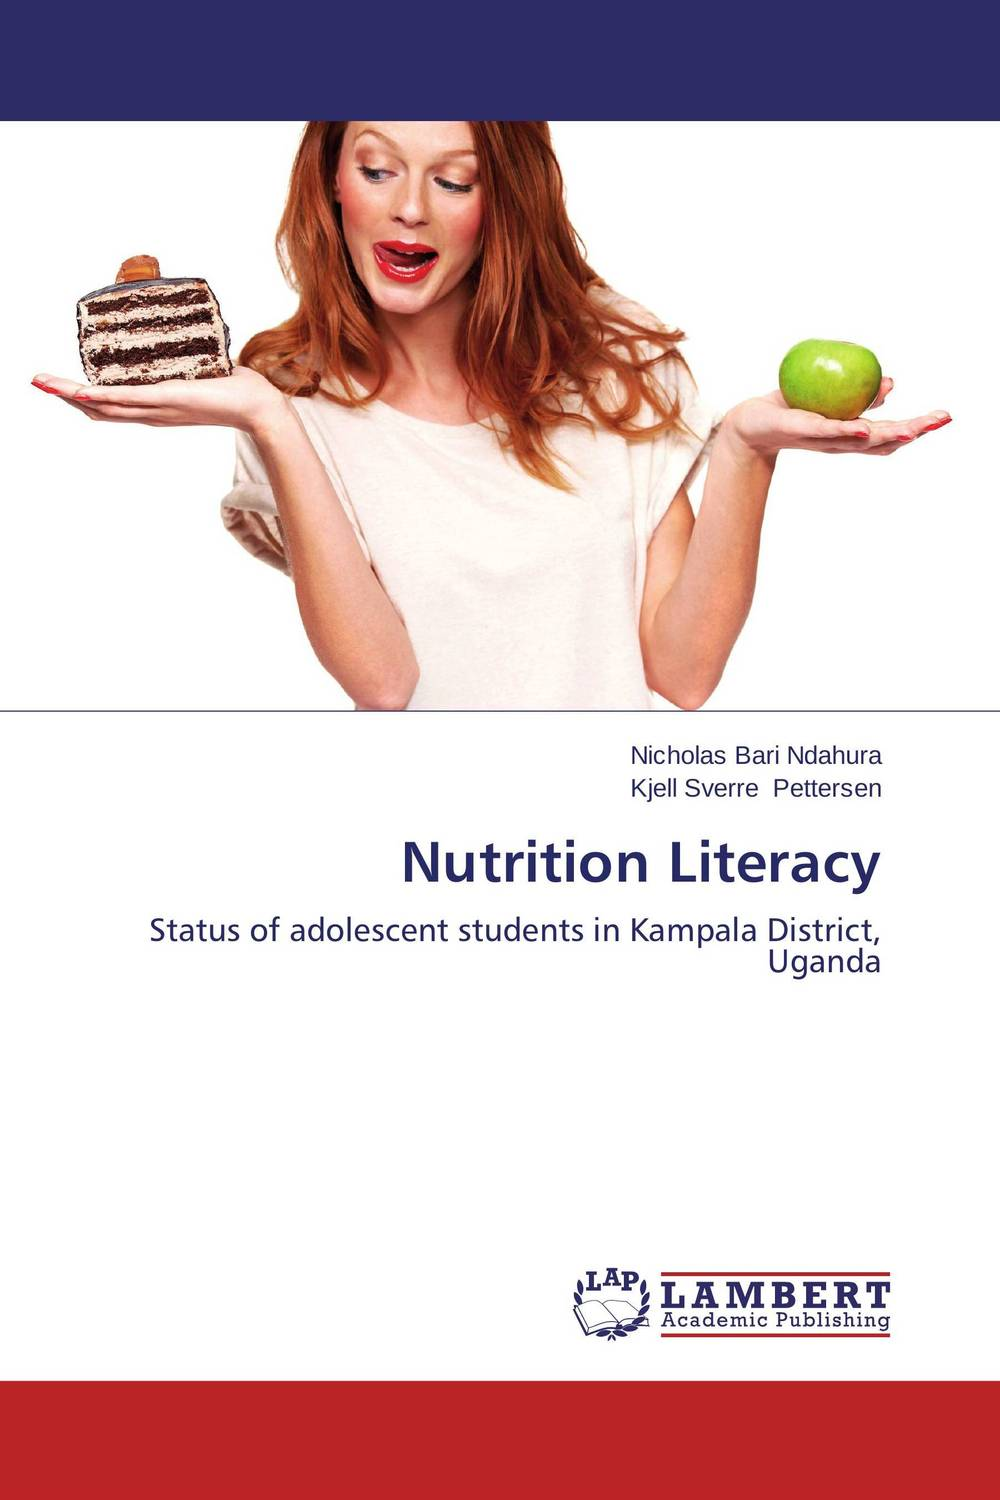 Nutrition Literacy reading literacy for adolescents